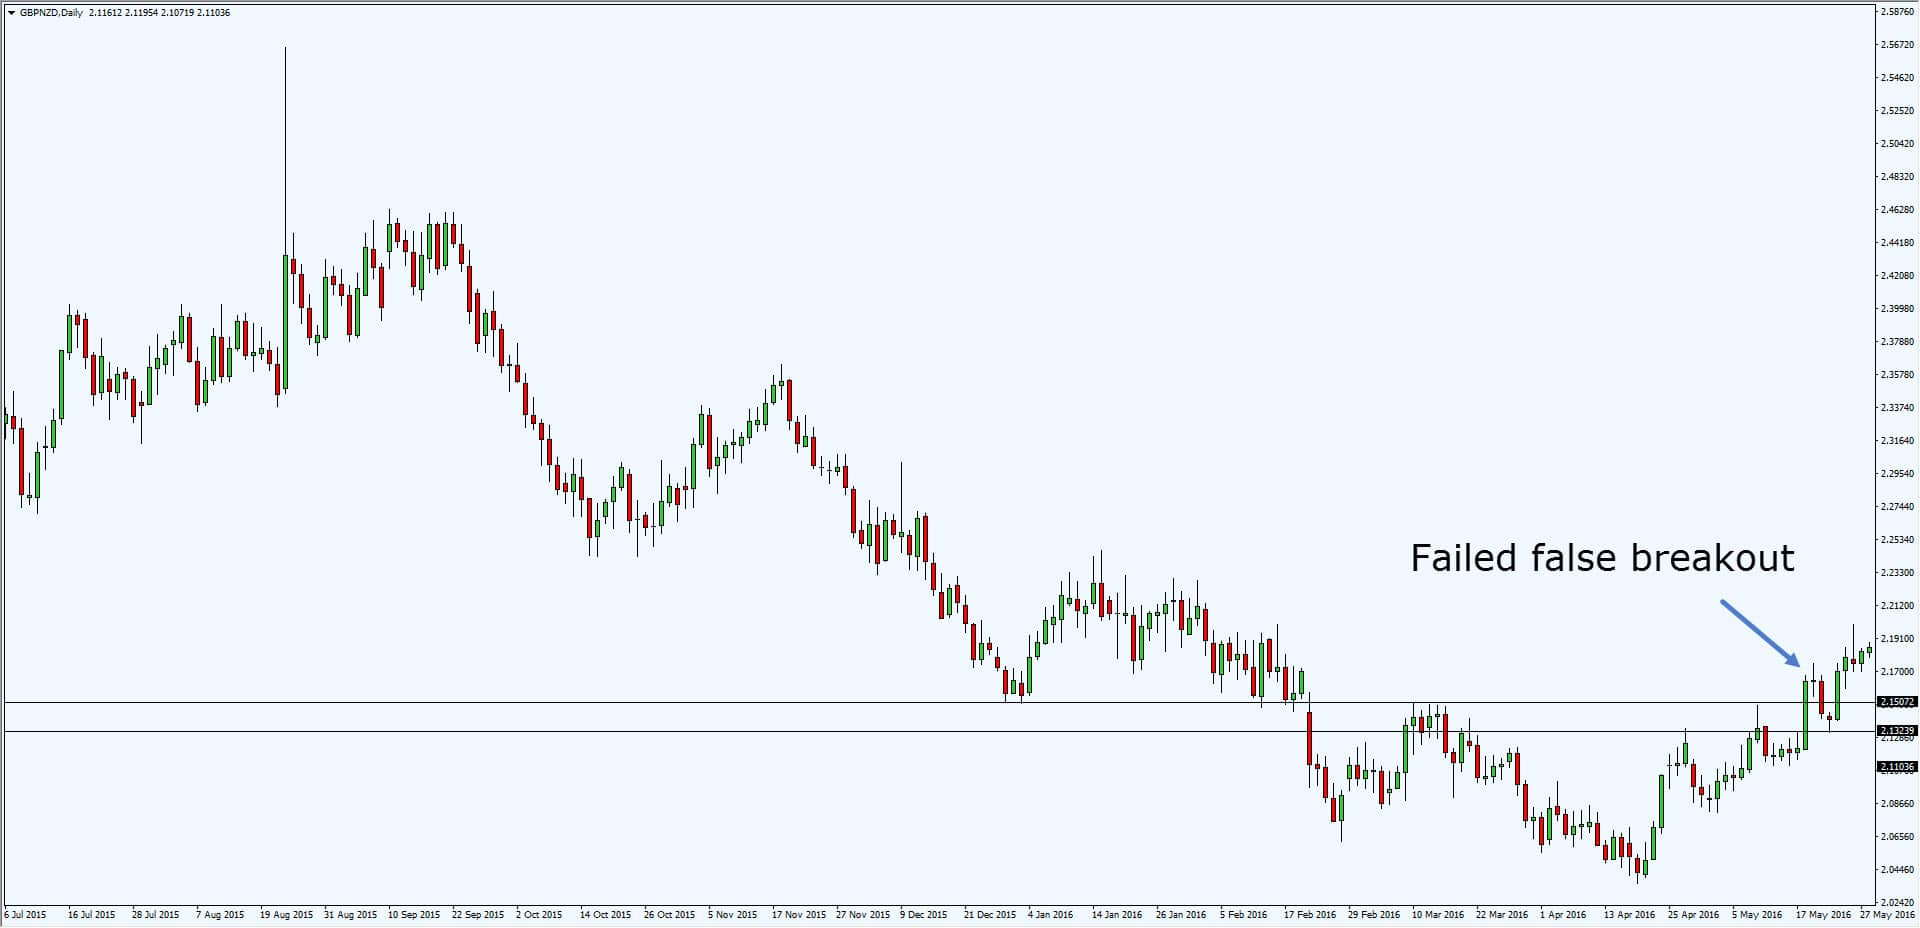 Trading strategy using support and resistance today